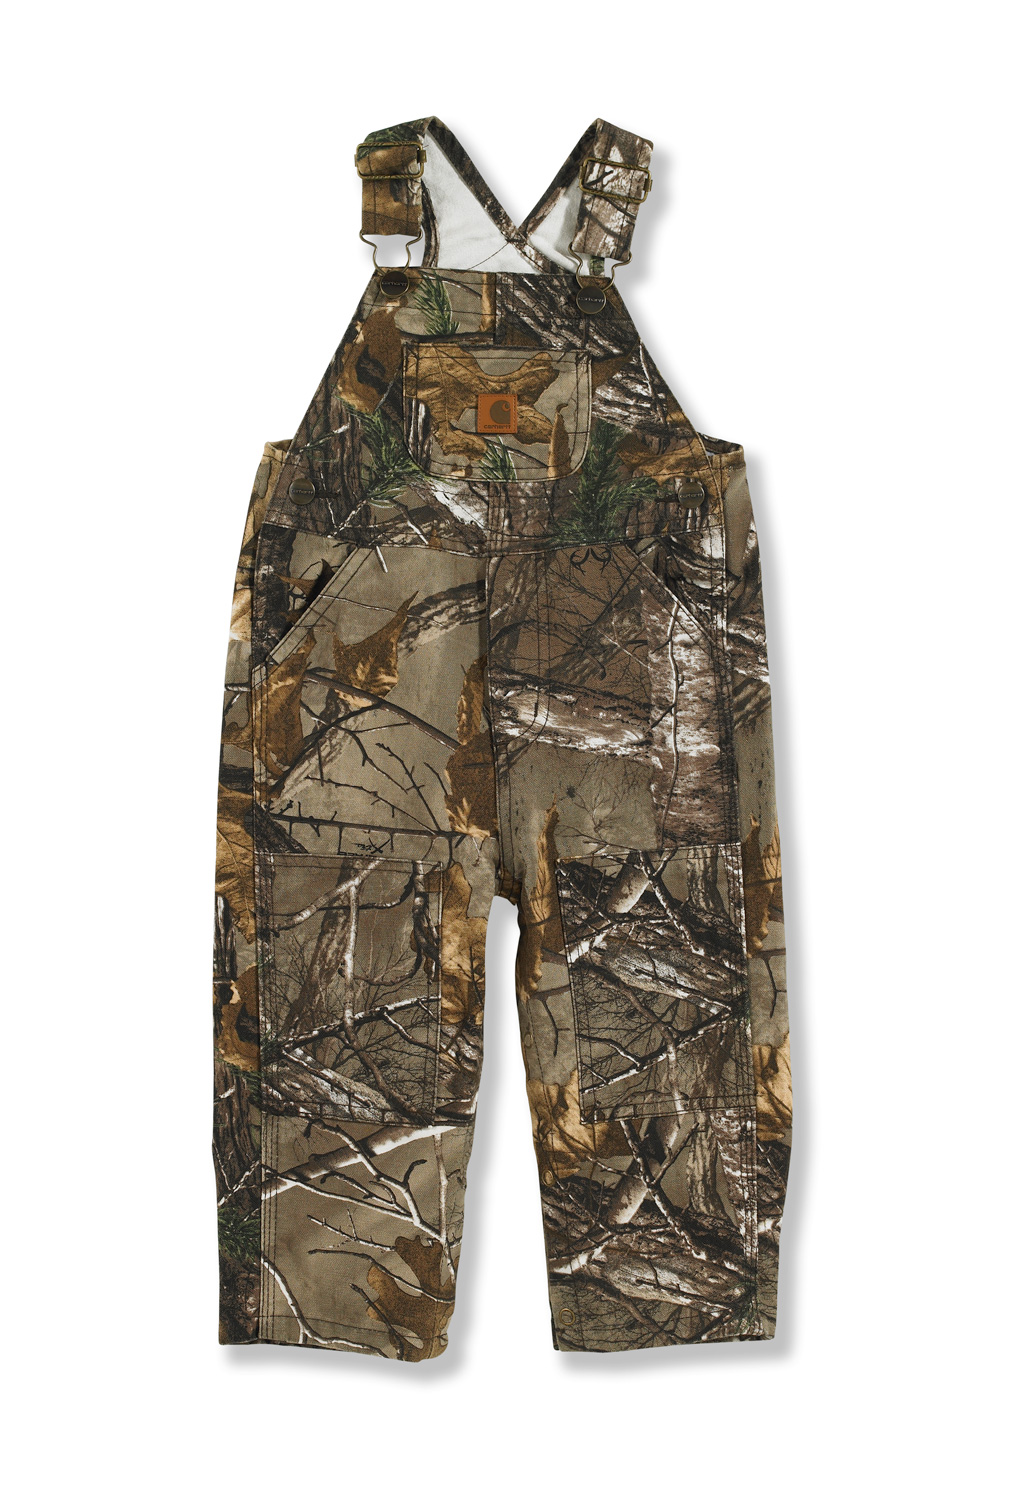 Carhartt Infant Boy's Washed Realtree Xtra® Bib Overalls Sizes 3m-24m